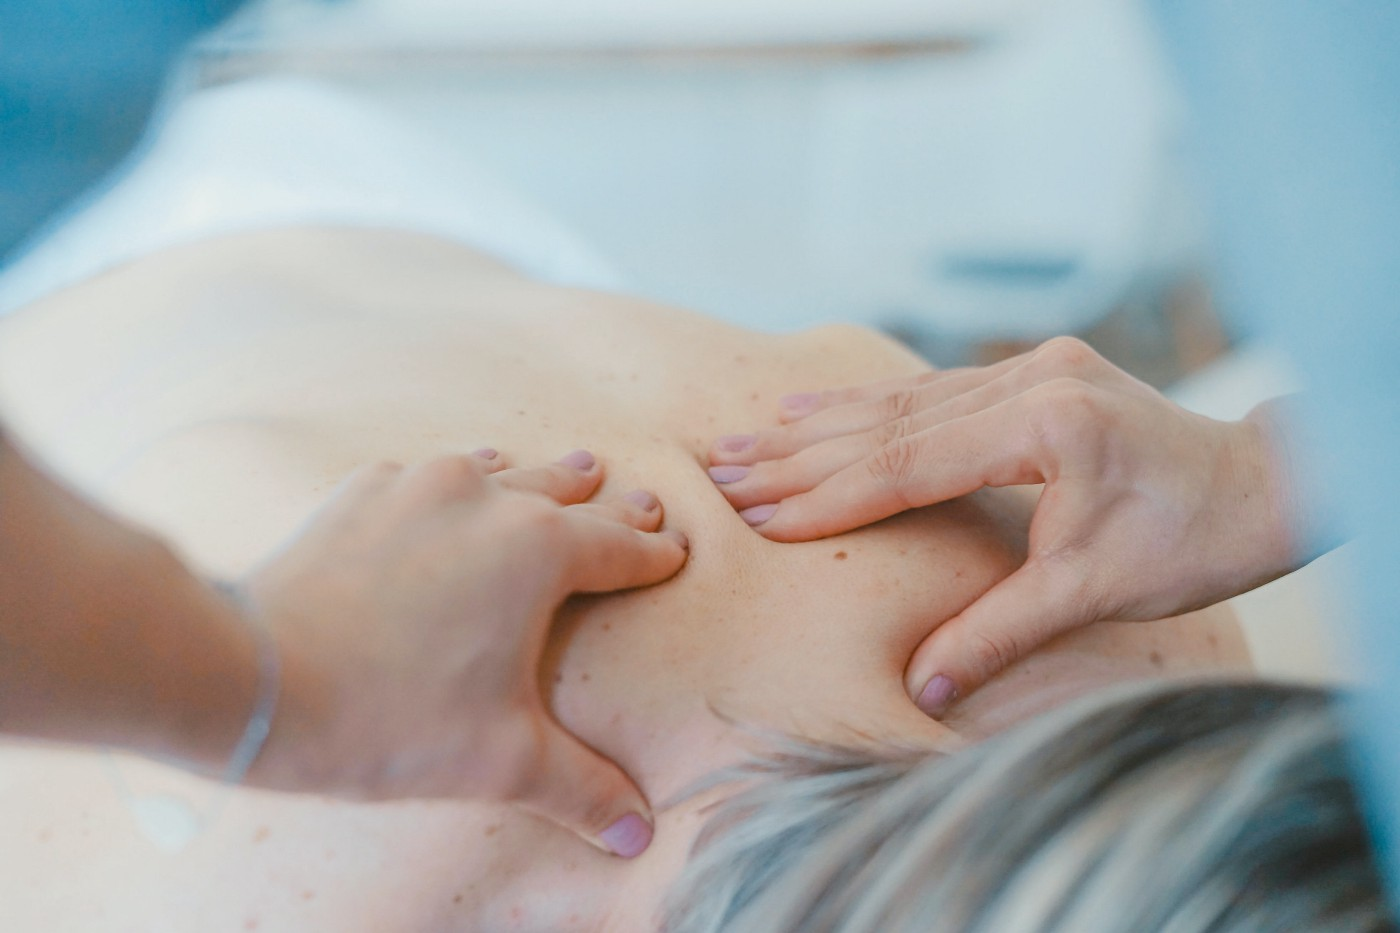 Picture of two hands massaging someone's back